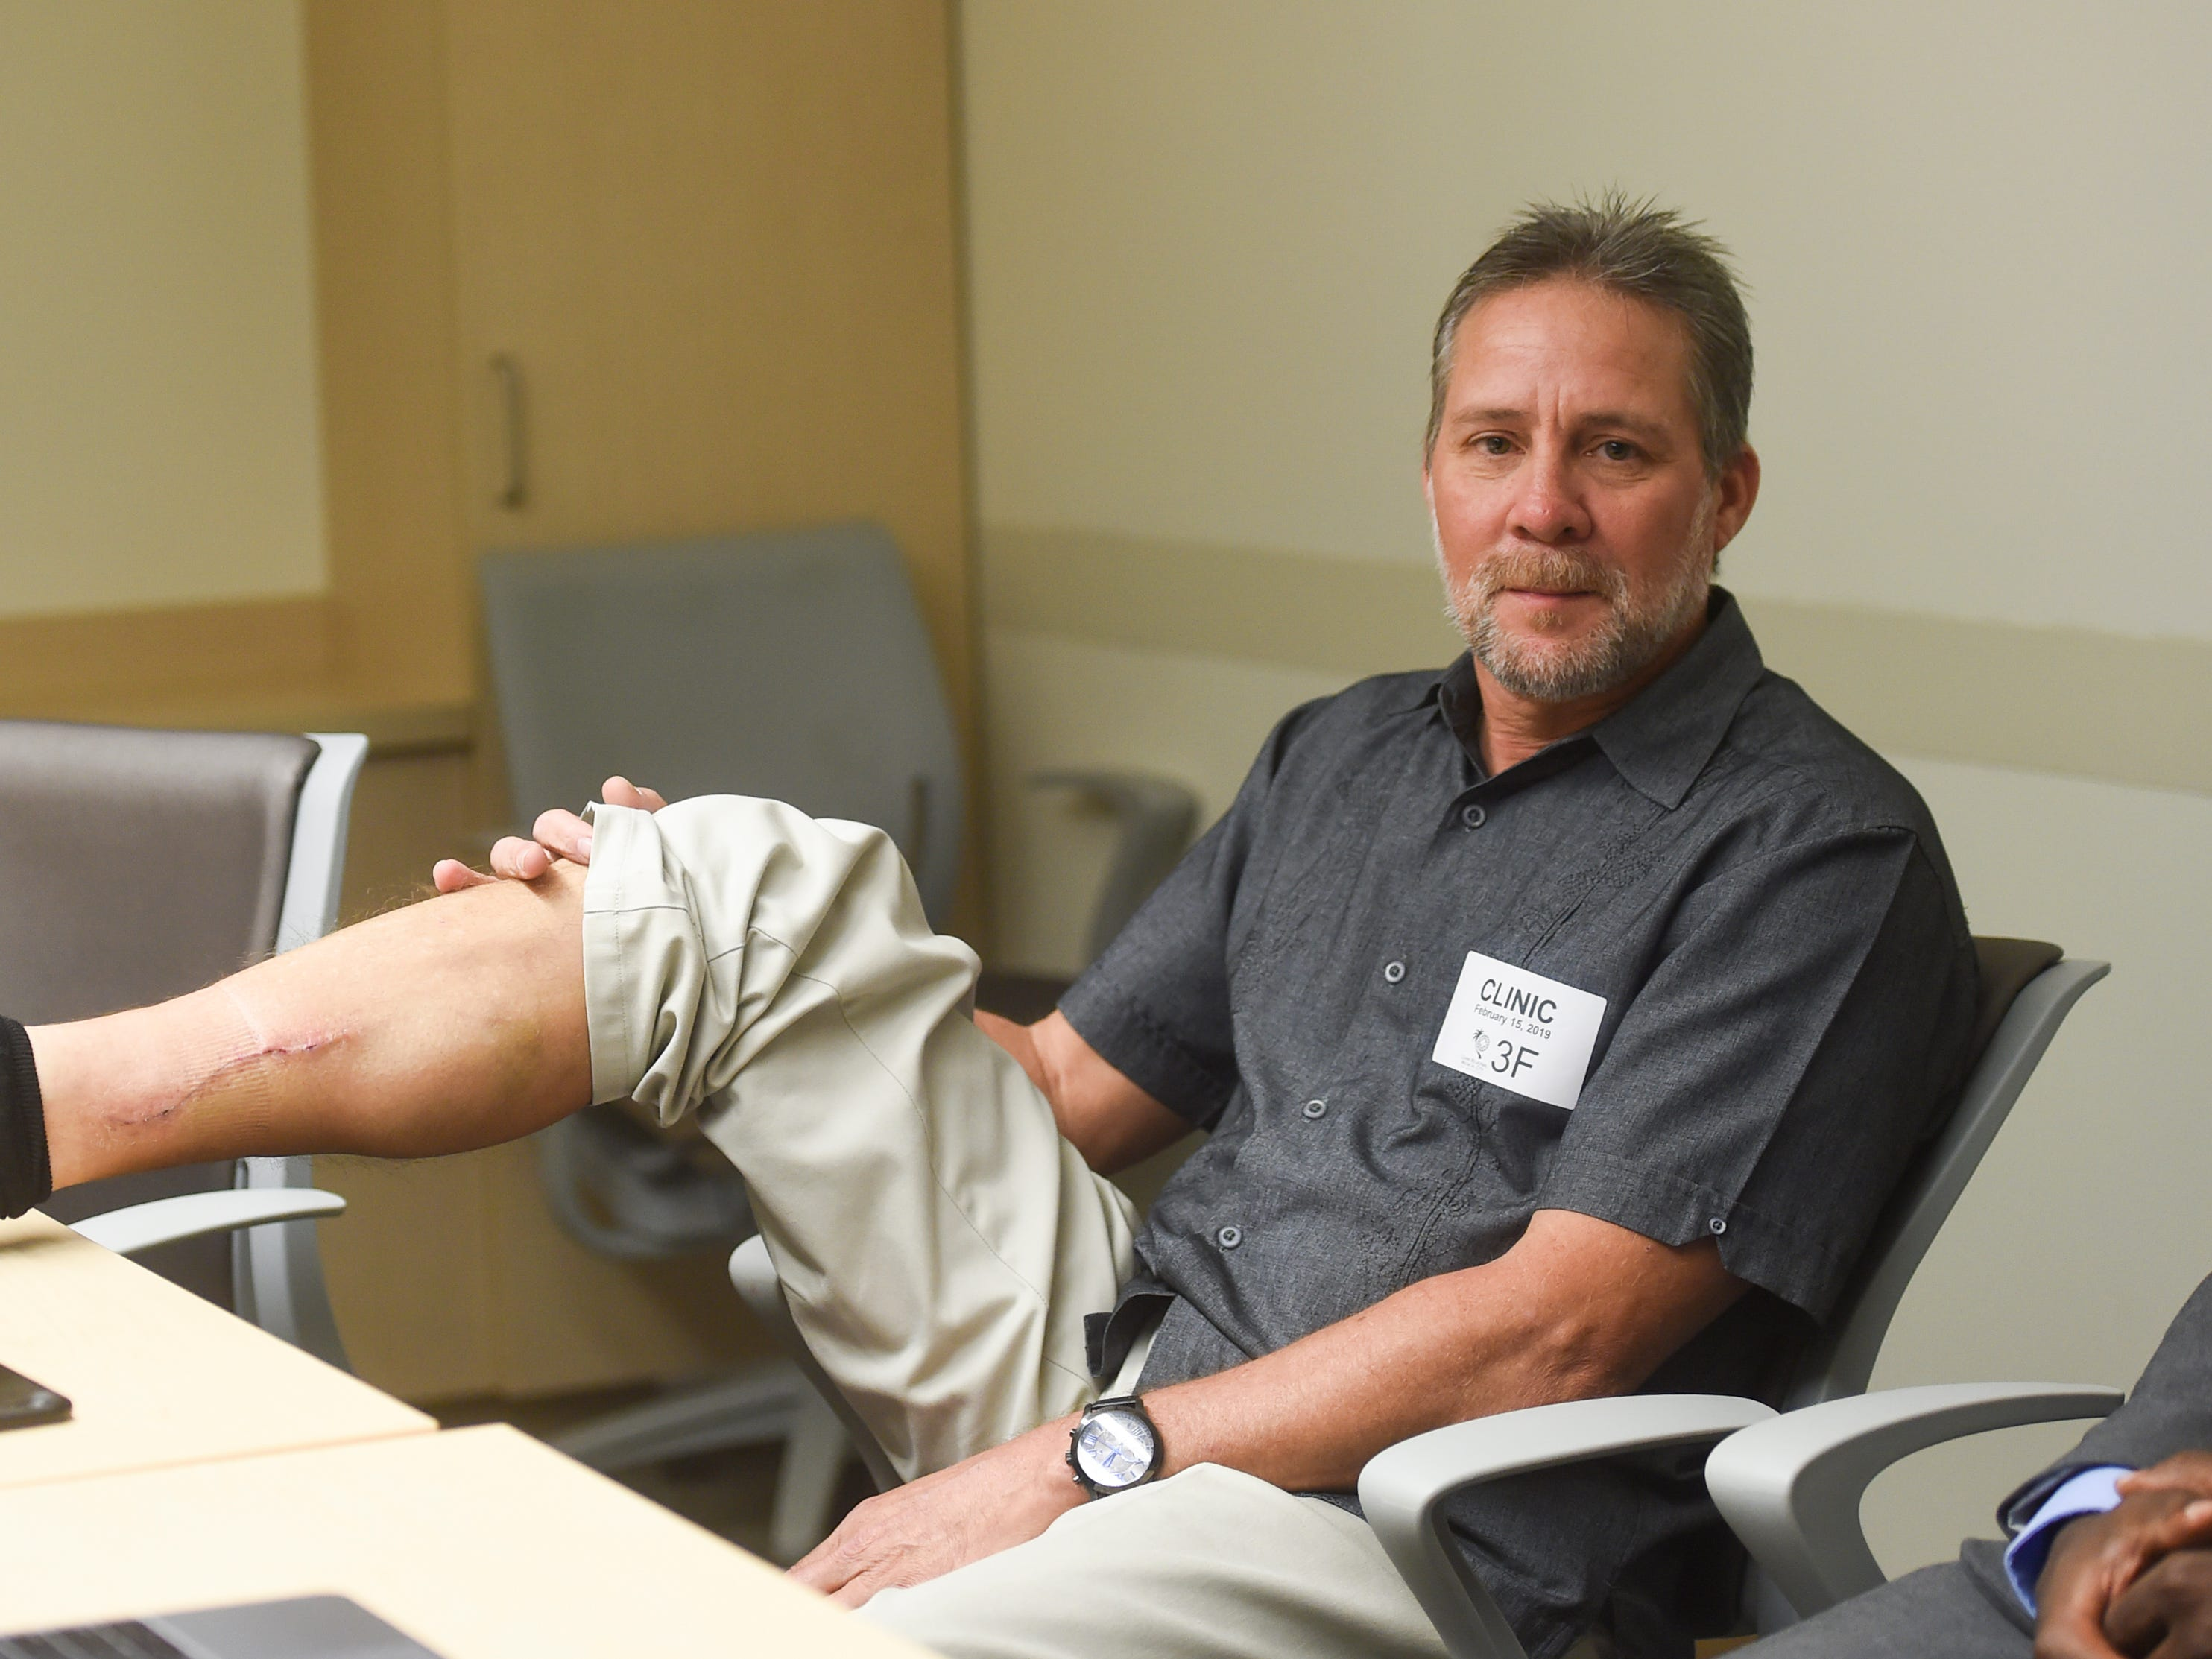 Cano Collazo-Cruz, 56, shows the area on his right leg where Drs. Kwasi Nyame and Noel Silan performed their Jan. 17 surgery to remove a tumor, at the Guam Regional Medical City on Feb. 15, 2019.